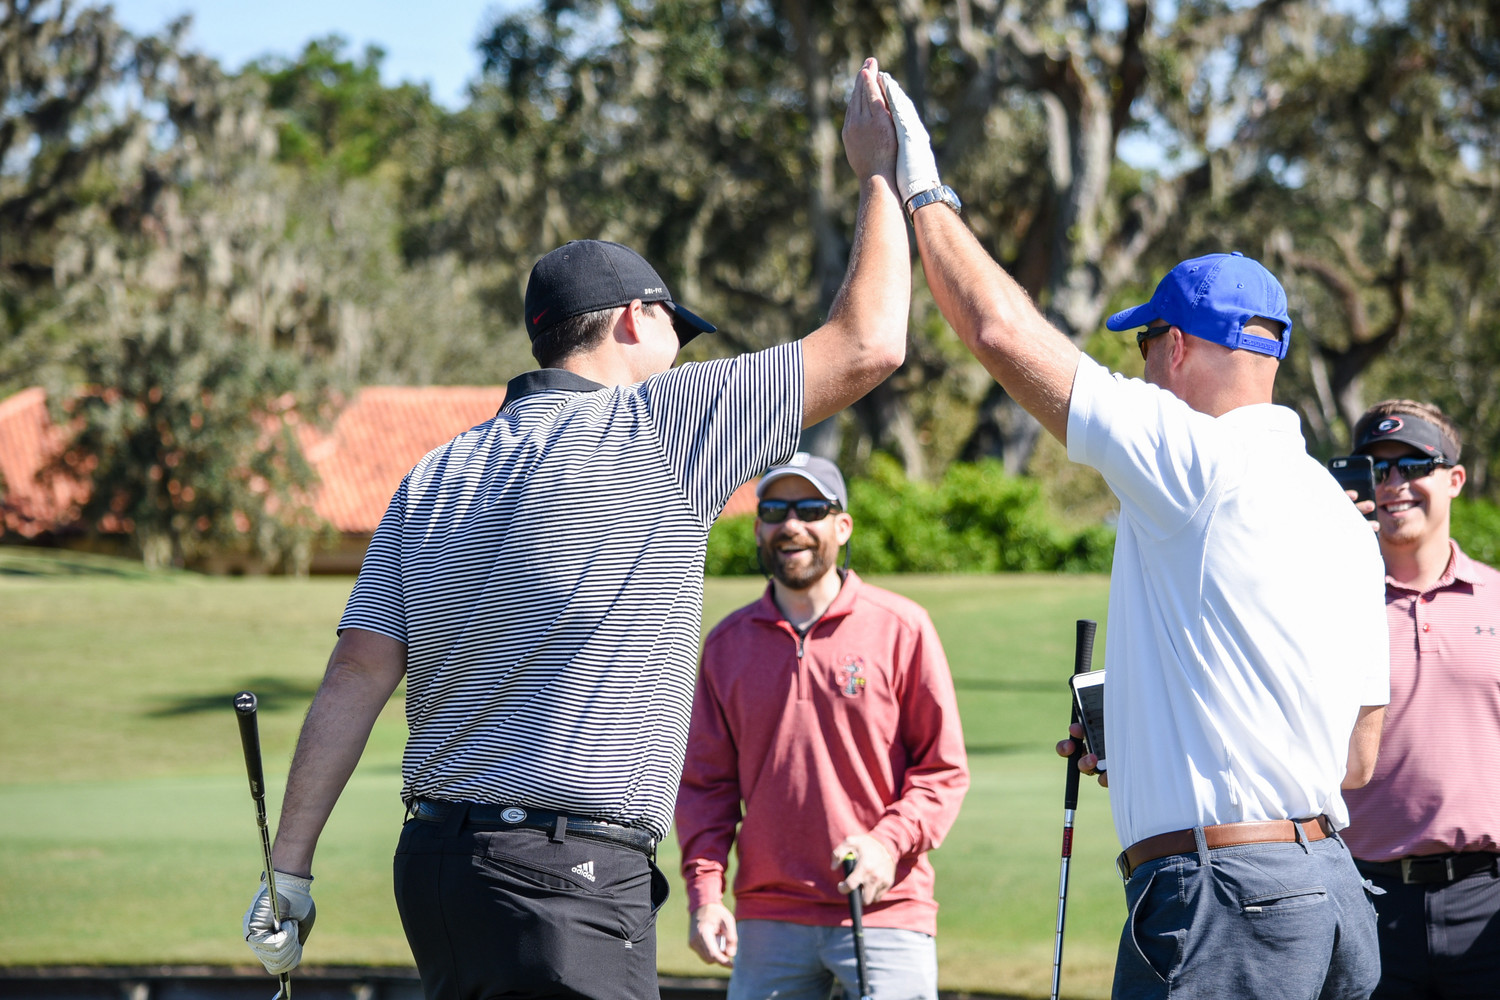 Danny Wuerffel (right) celebrates his team's success during the Desire Cup.